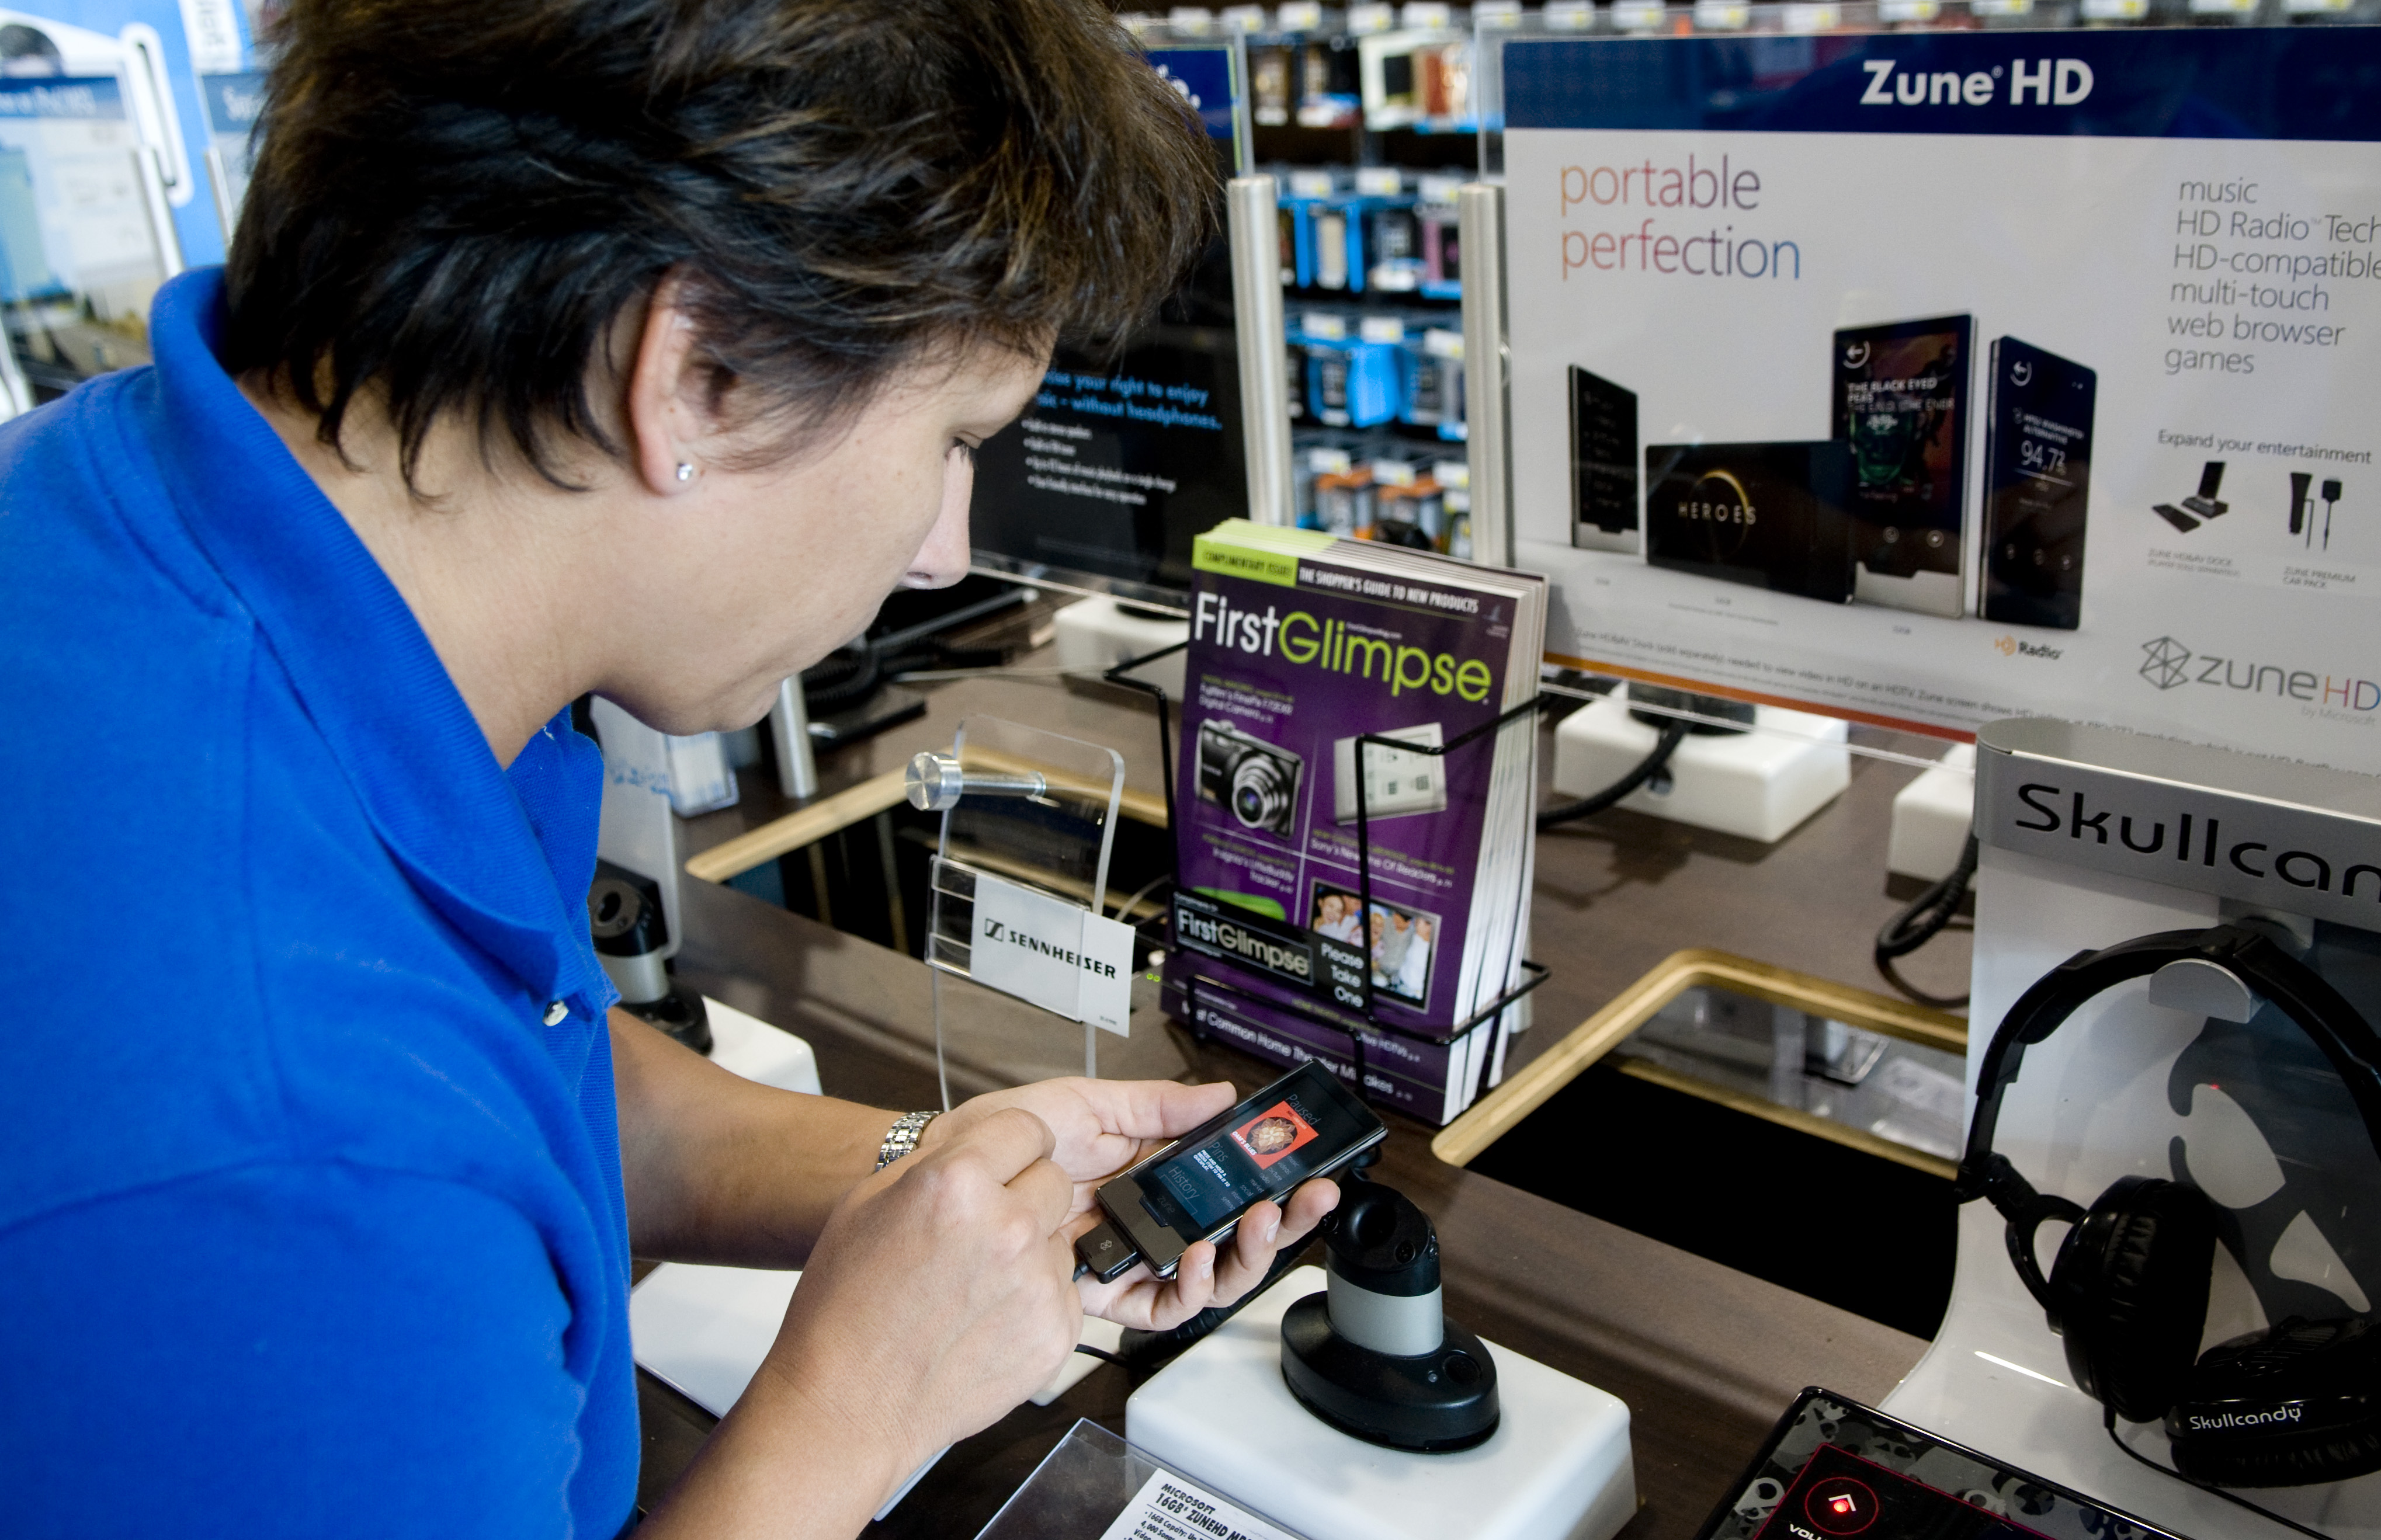 Zune makes gains but not there yet | The Spokesman-Review